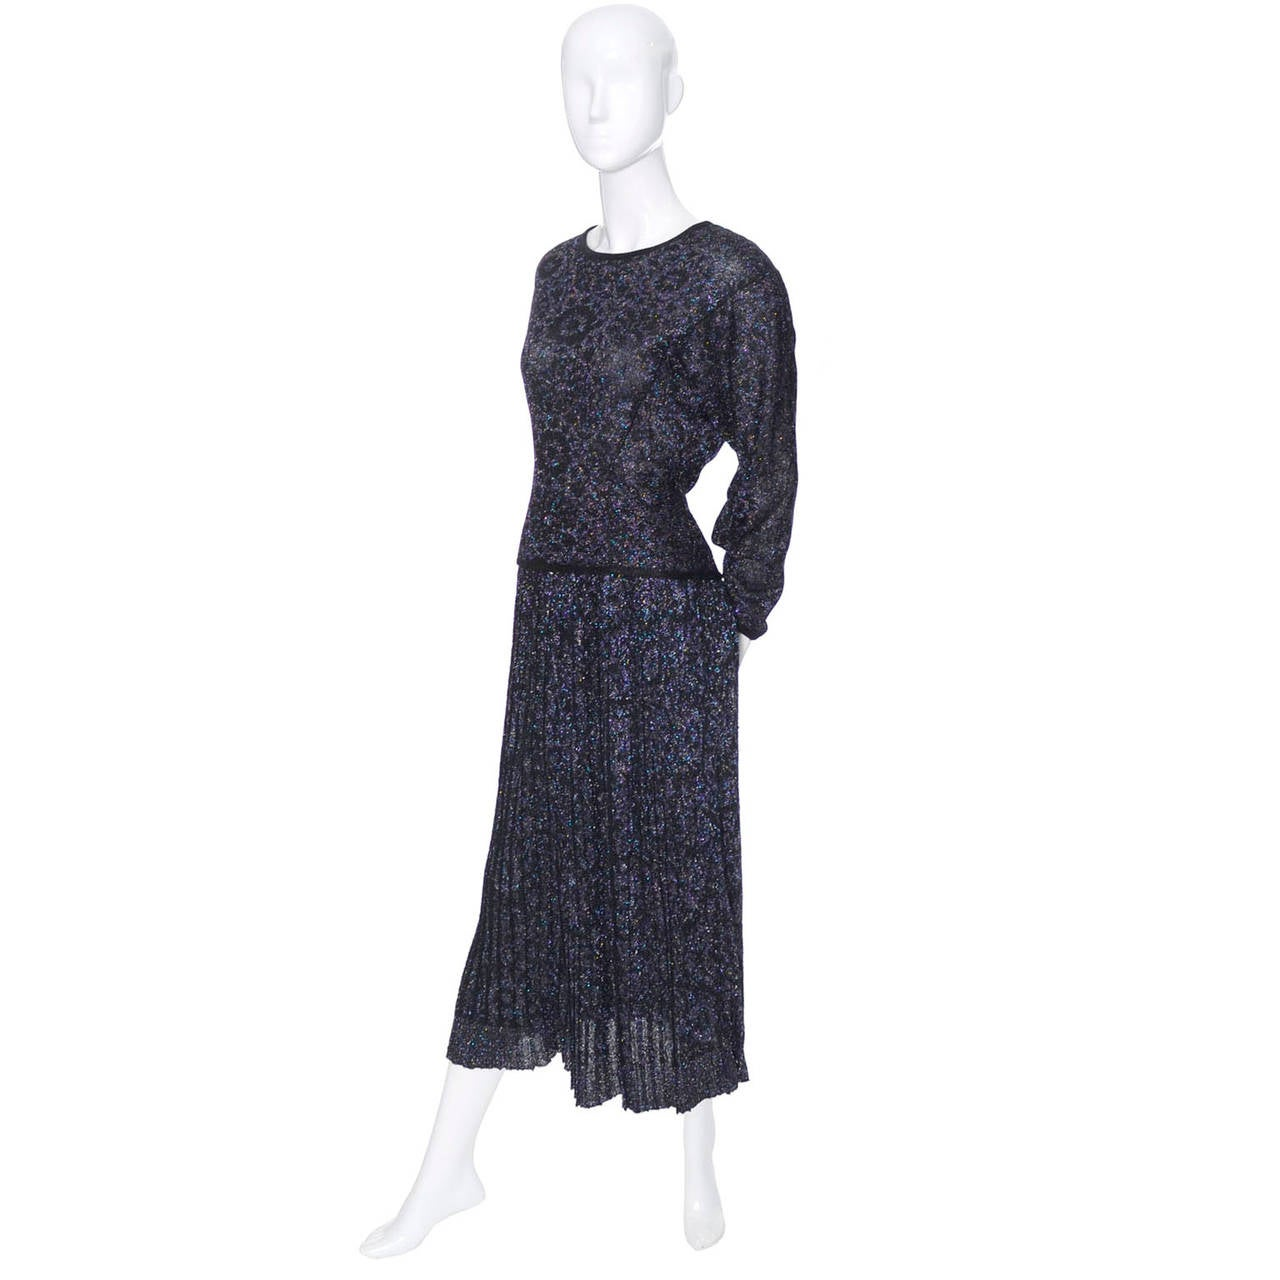 This is a 2 piece vintage Missoni iridescent sparkle outfit with pleated skirt and long sleeved top.  This ensemble was purchased at Saks Fifth Avenue in the 1980's and is labeled an Italian size 44. You can make out a pretty floral pattern in the